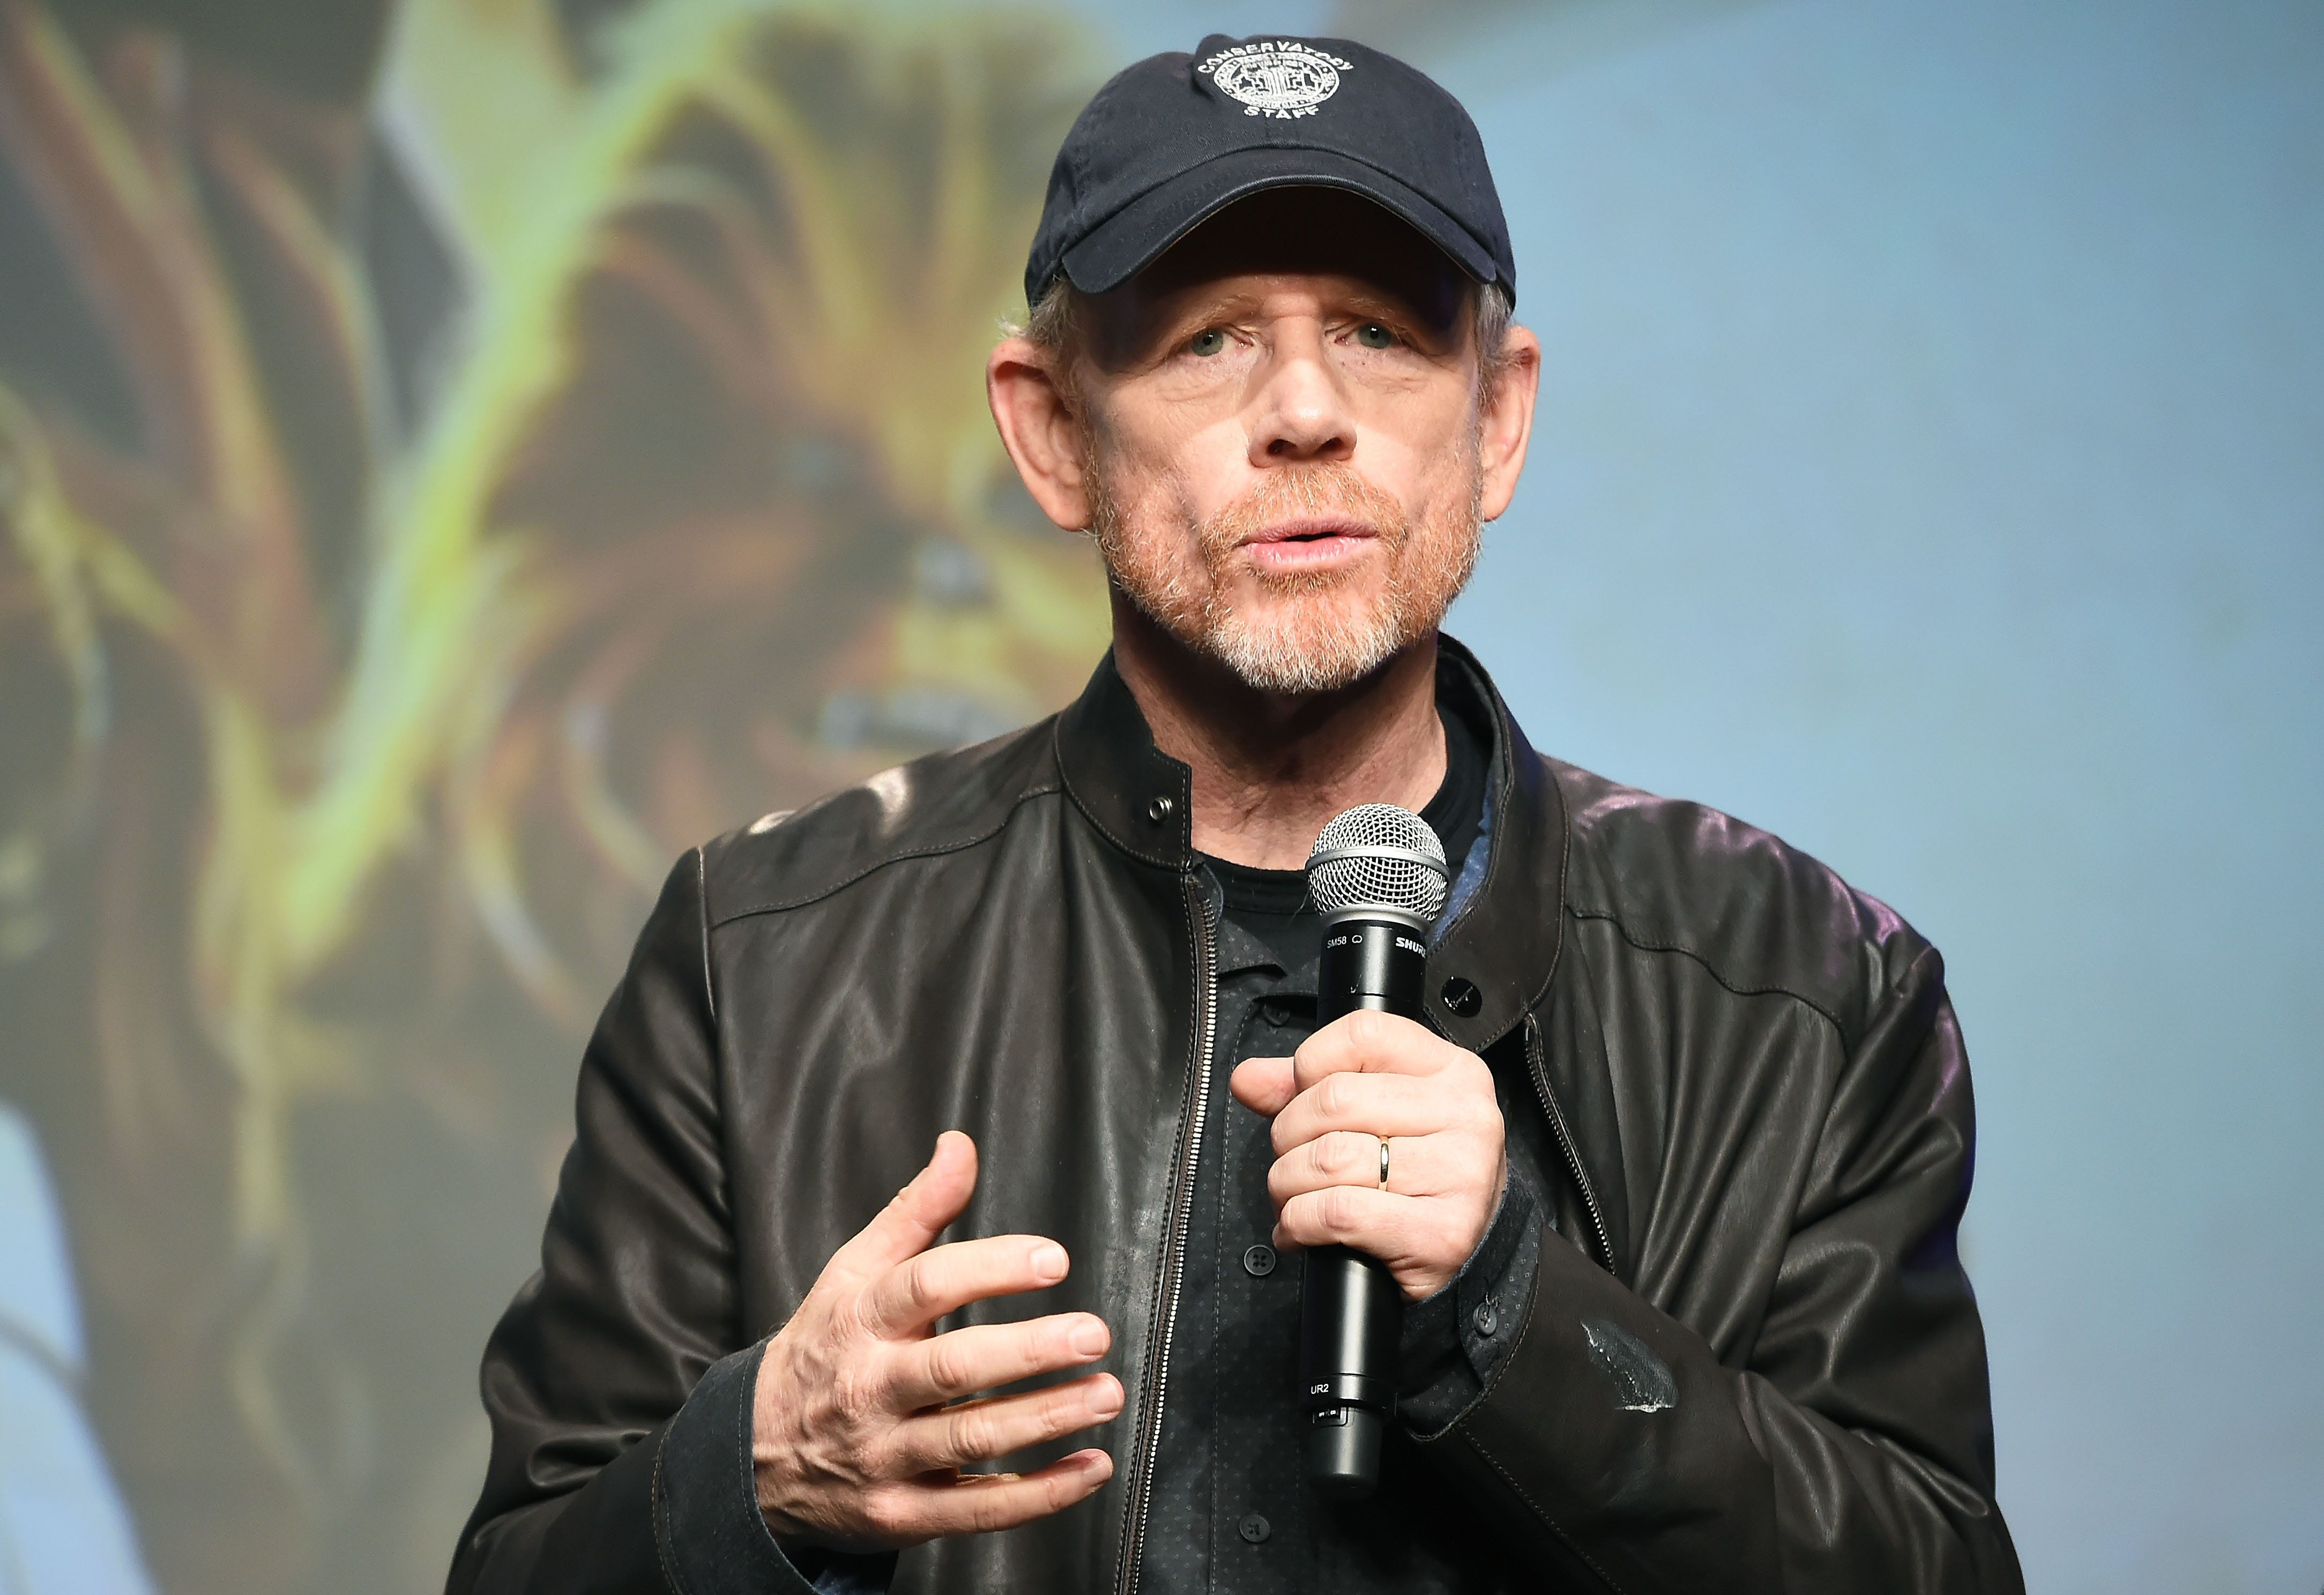 TOKYO, JAPAN - JUNE 11:  Director Ron Howard attends the Solo: A Star Wars Story Press Conference at Midtown Hall on June 11, 2018 in Tokyo, Japan.  (Photo by Jun Sato/WireImage)